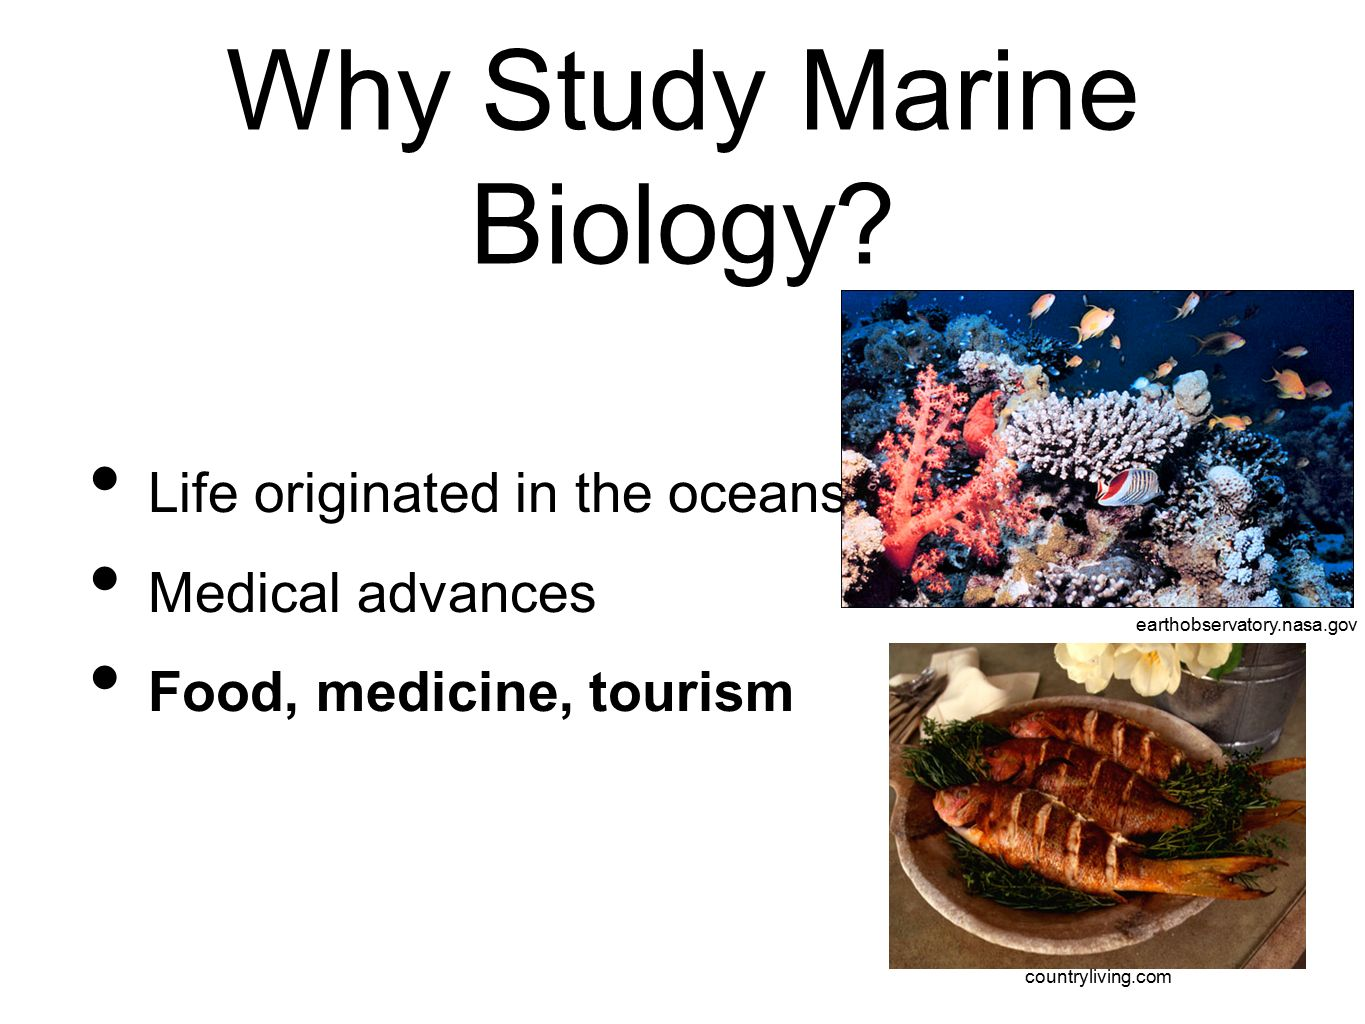 The Science Of Marine Biology  Ppt Video Online Download. Programming Classes For Beginners. High Speed Internet And Cable Packages. How To Donate To A Charity Online Law Degree. Bookkeeping And Accounting Courses. Nursing Programs In San Antonio Texas. Plumbers Arlington Texas Startup Office Space. Alternative Help For Depression. Colleges In Northern Indiana Visa Card Apr